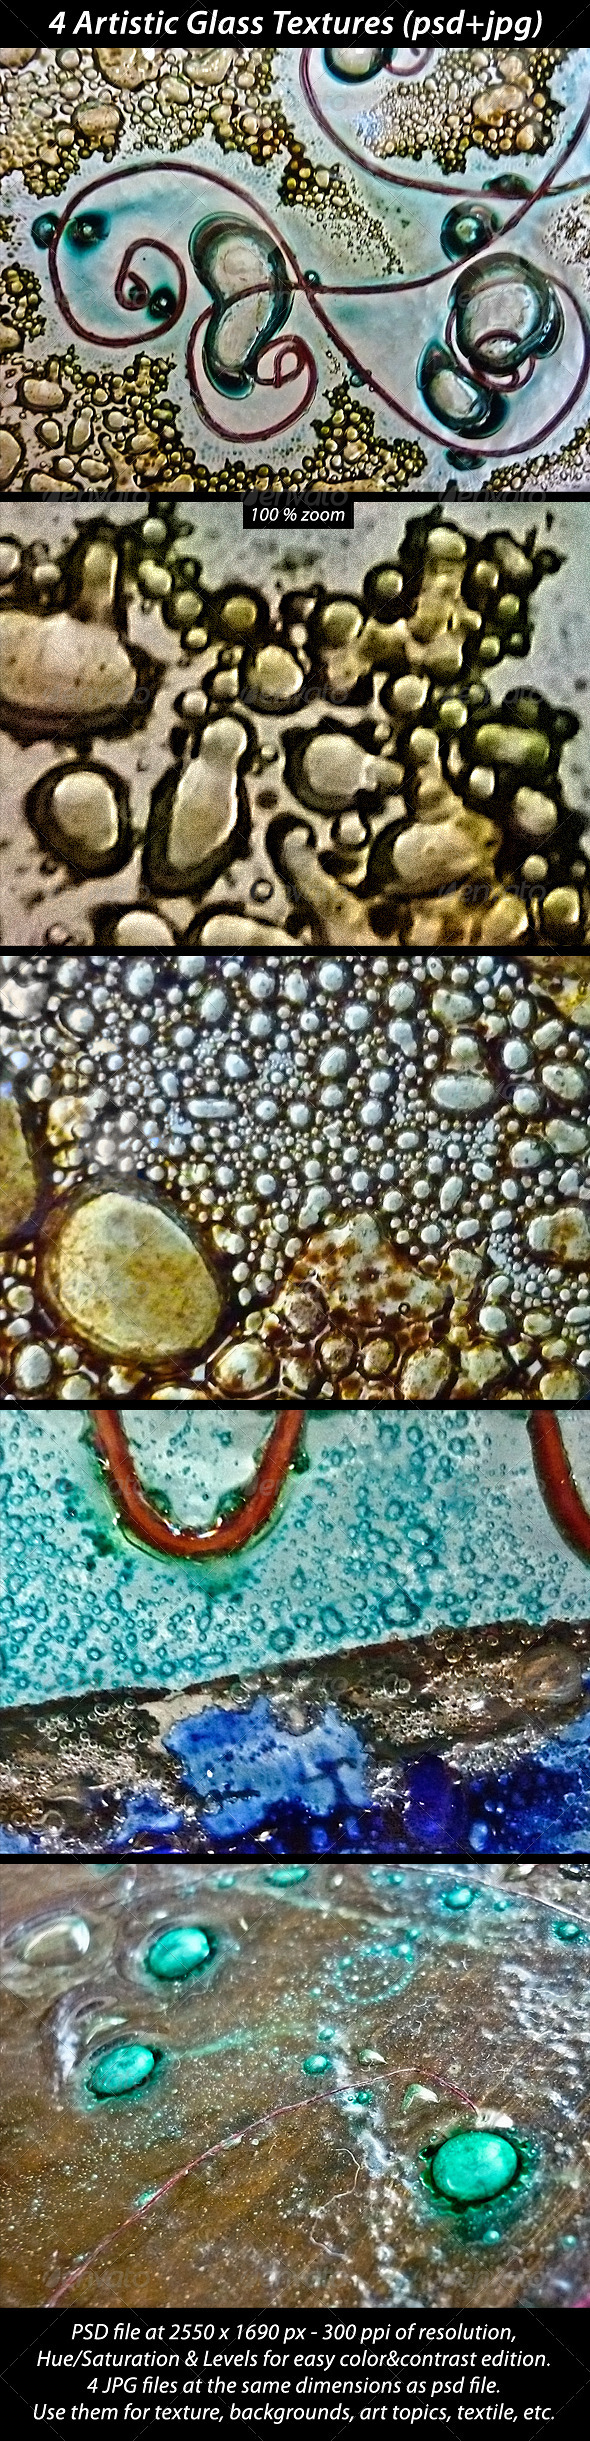 4 Artistic Glass Textures